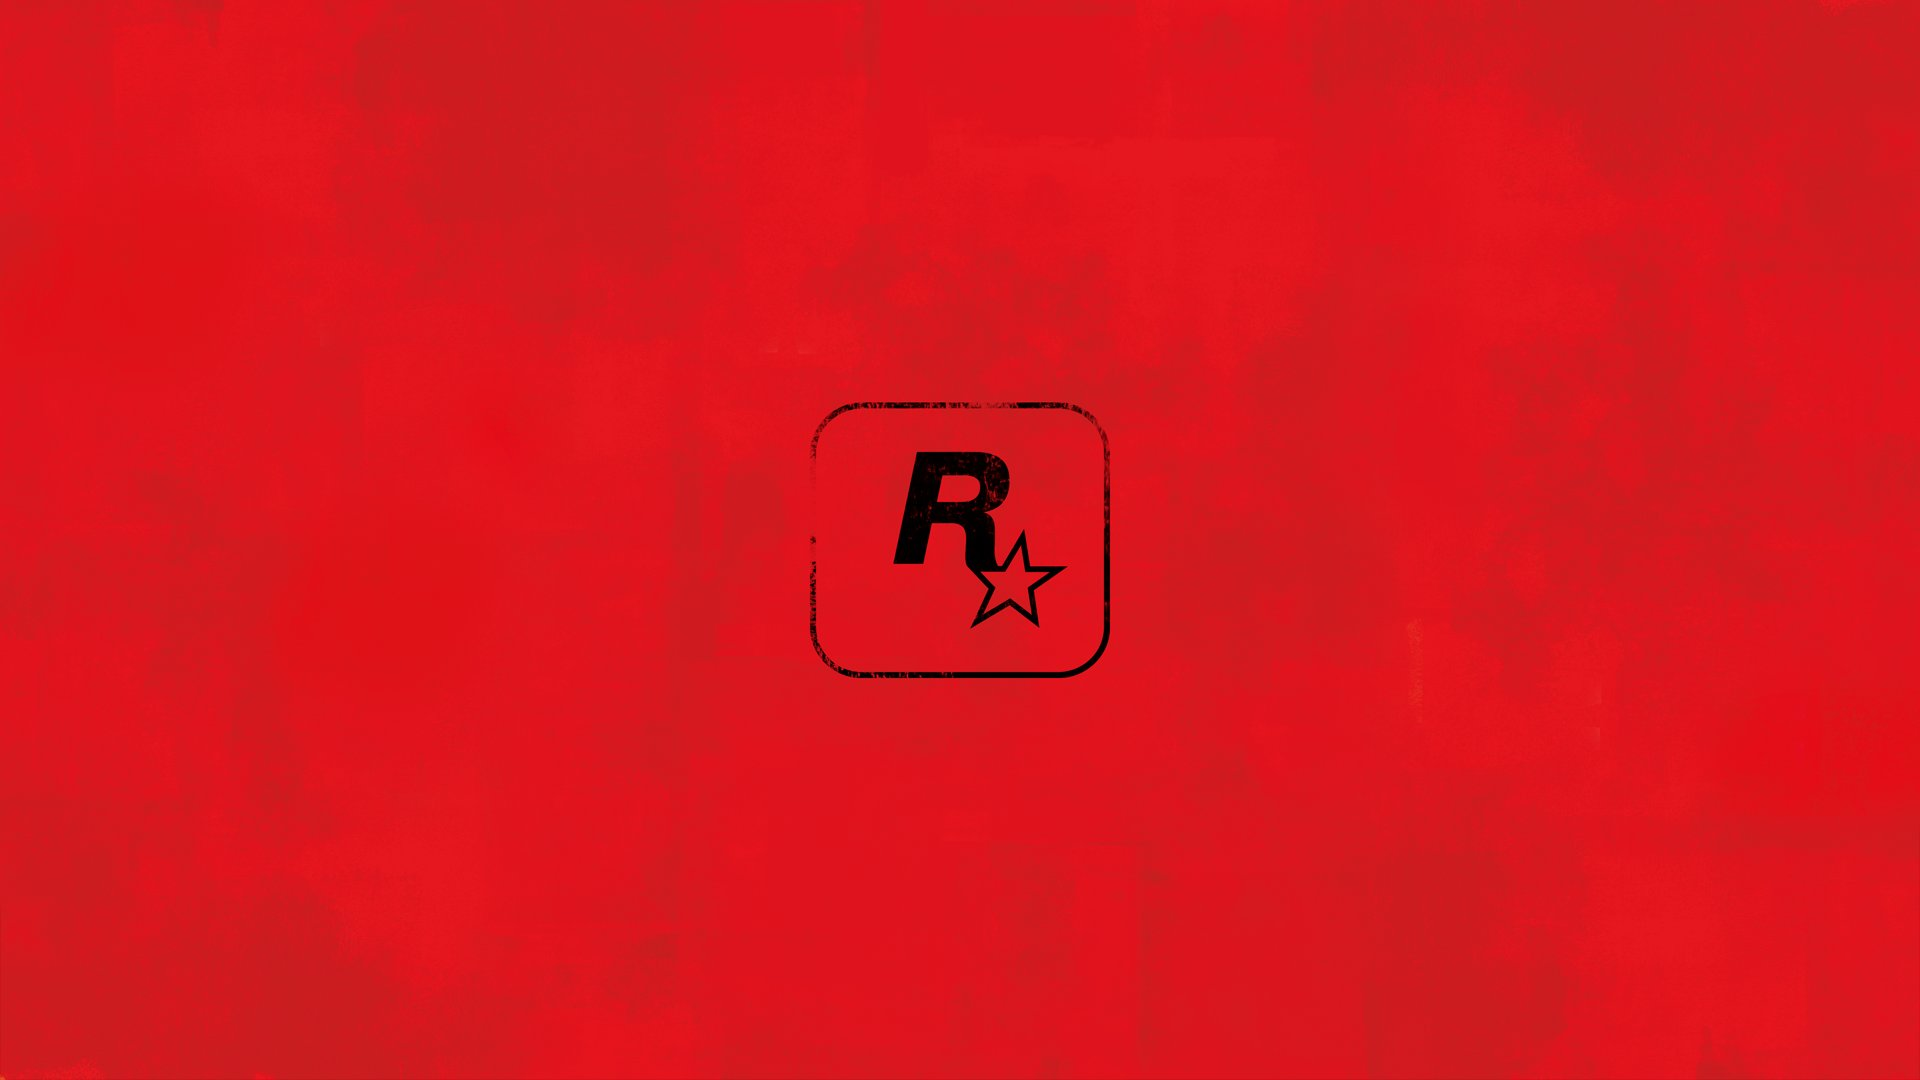 Did Rockstar just tweet something about a new Red Dead Redemption?